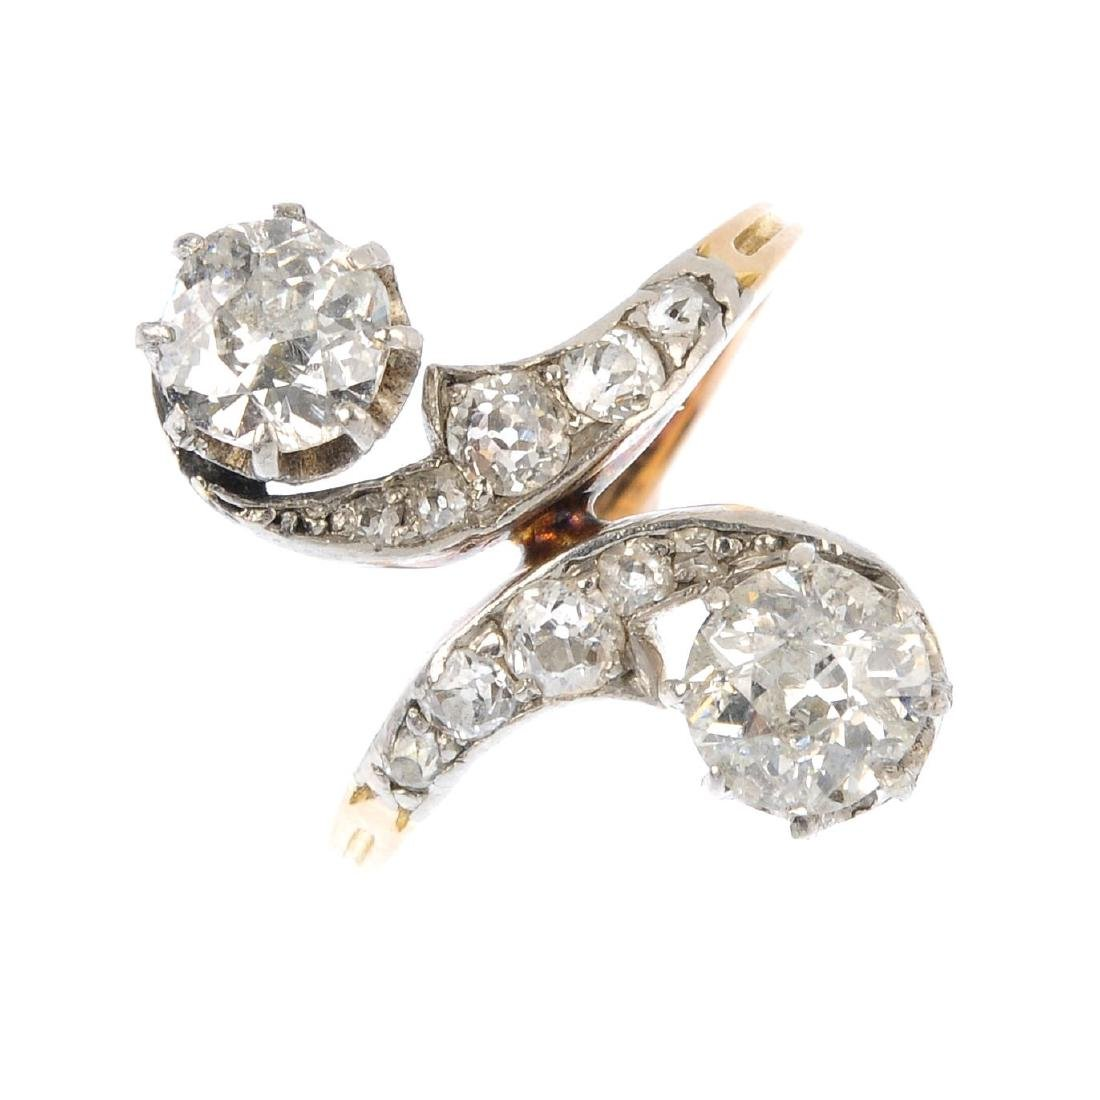 An early 20th century 18ct gold diamond ring. The